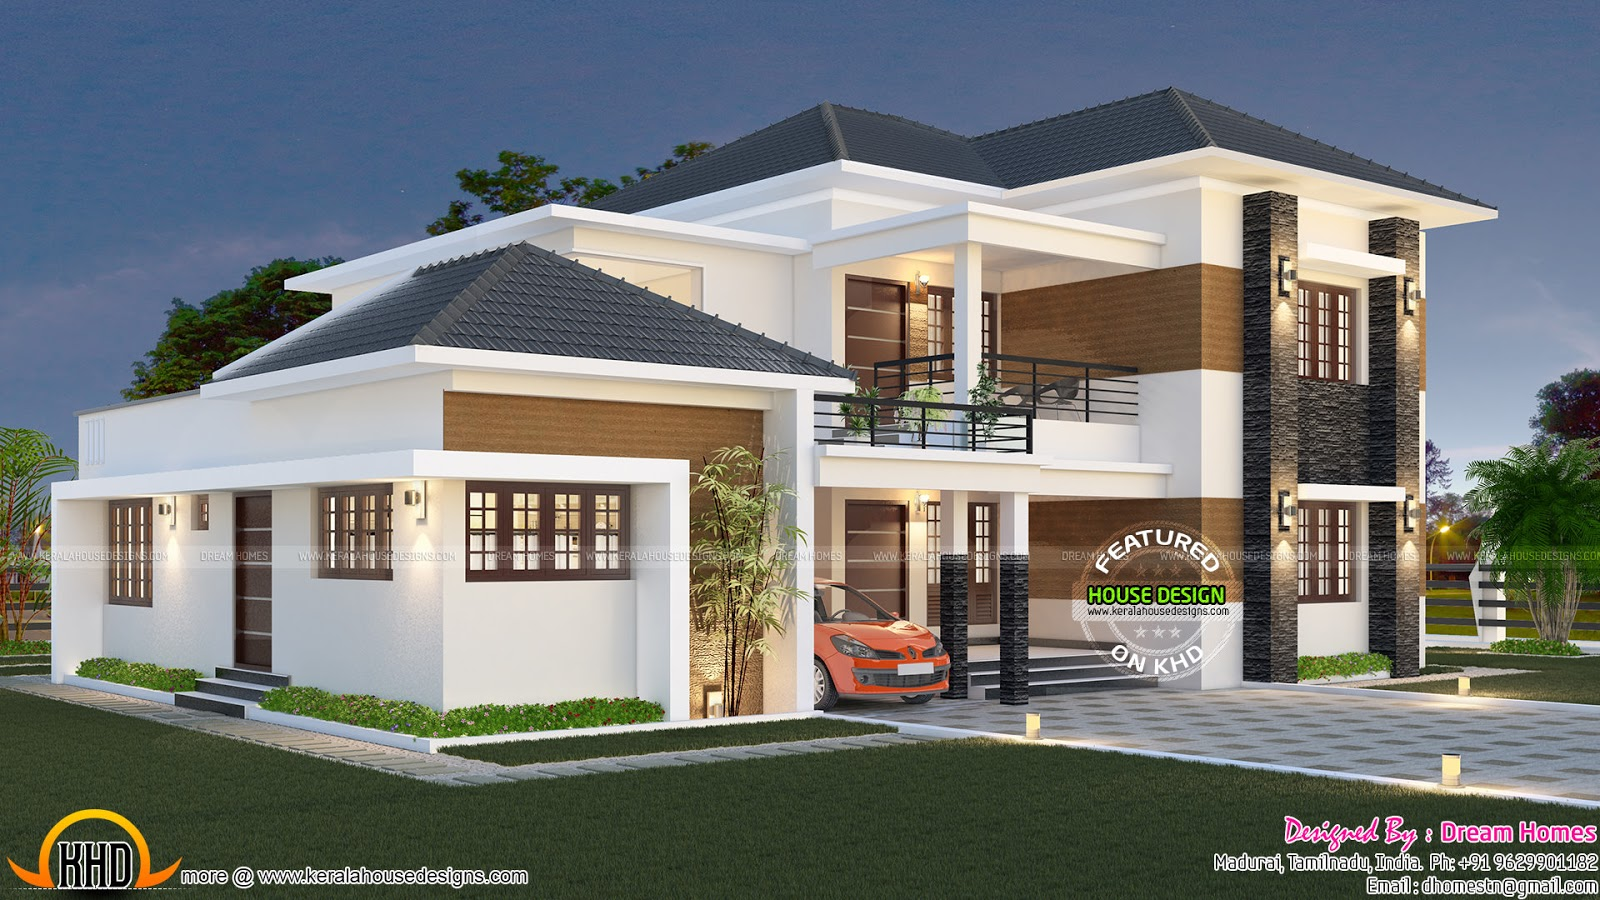 Elegant south indian villa kerala home design and floor for Modern house designs and floor plans in india